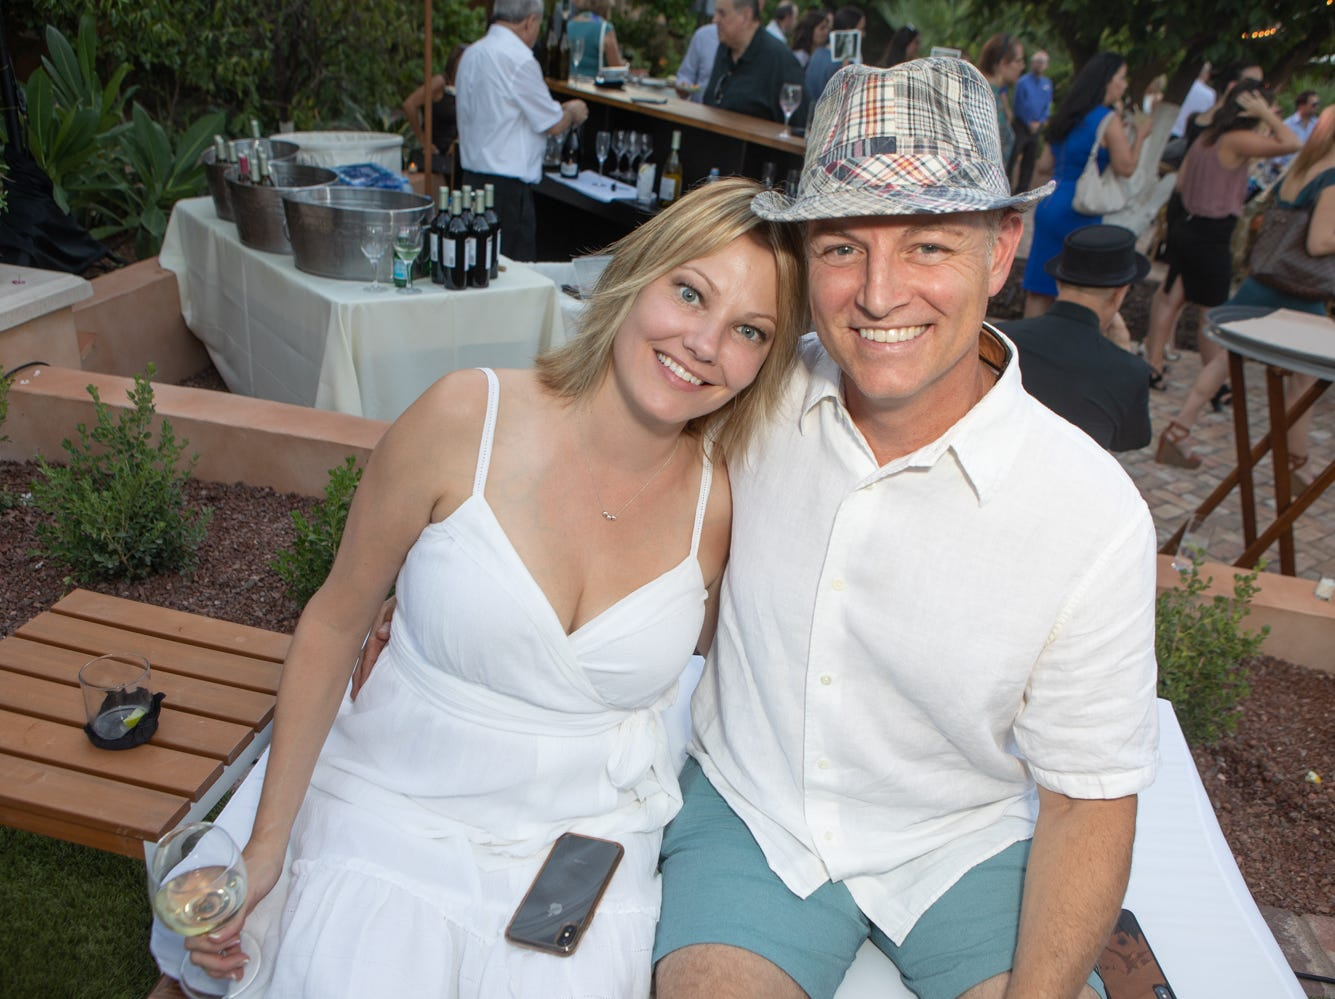 Royal Palms Resort and Spa celebrated their 70th anniversary with jazz music, signature dishes and libations on Thursday, Sept. 20, 2018 in Scottsdale.